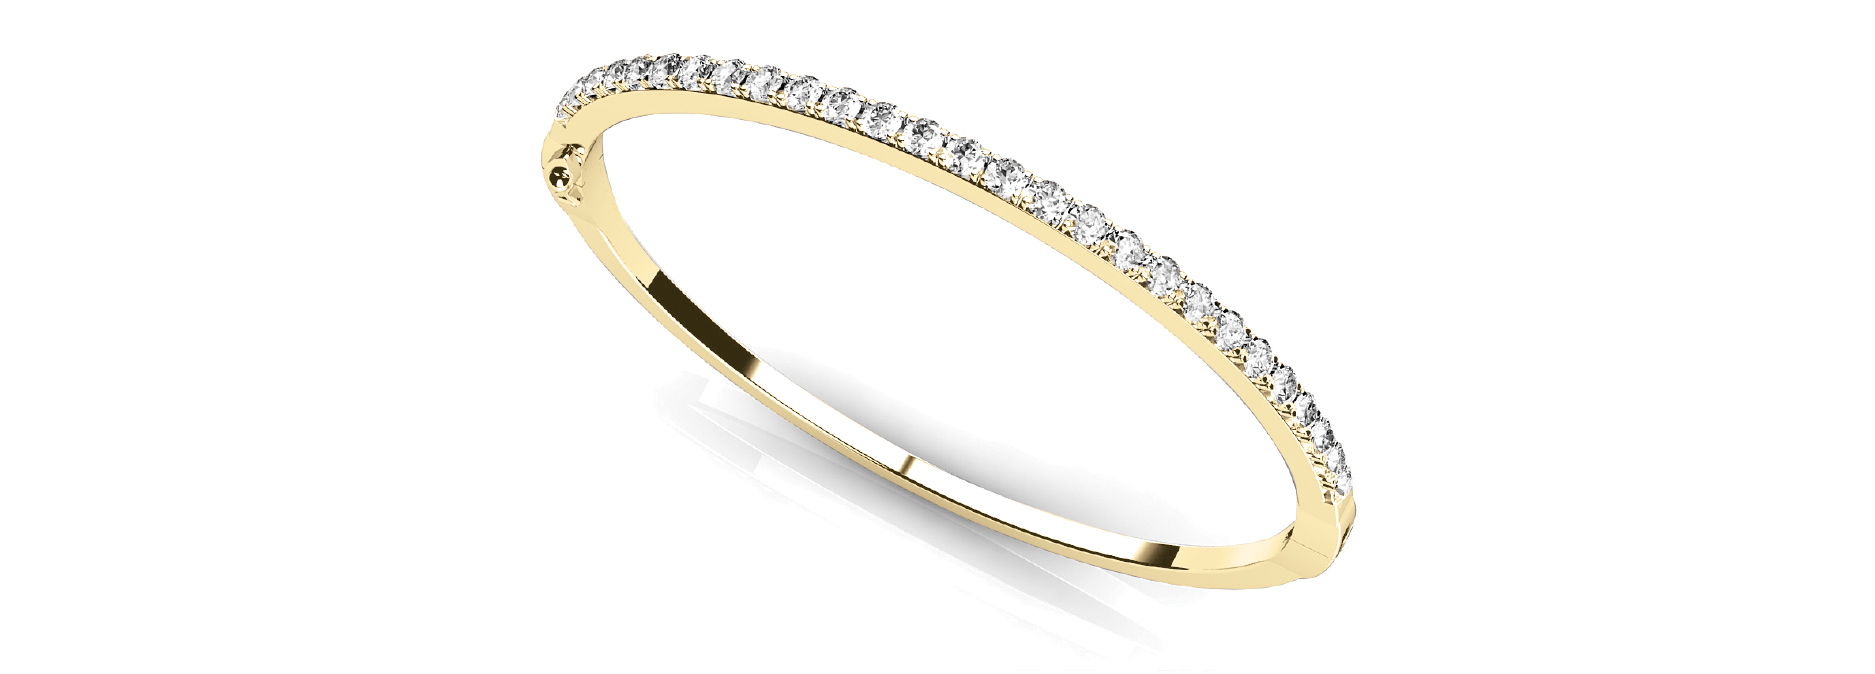 Round Diamond Yellow Gold Bangle 1.45 Ct